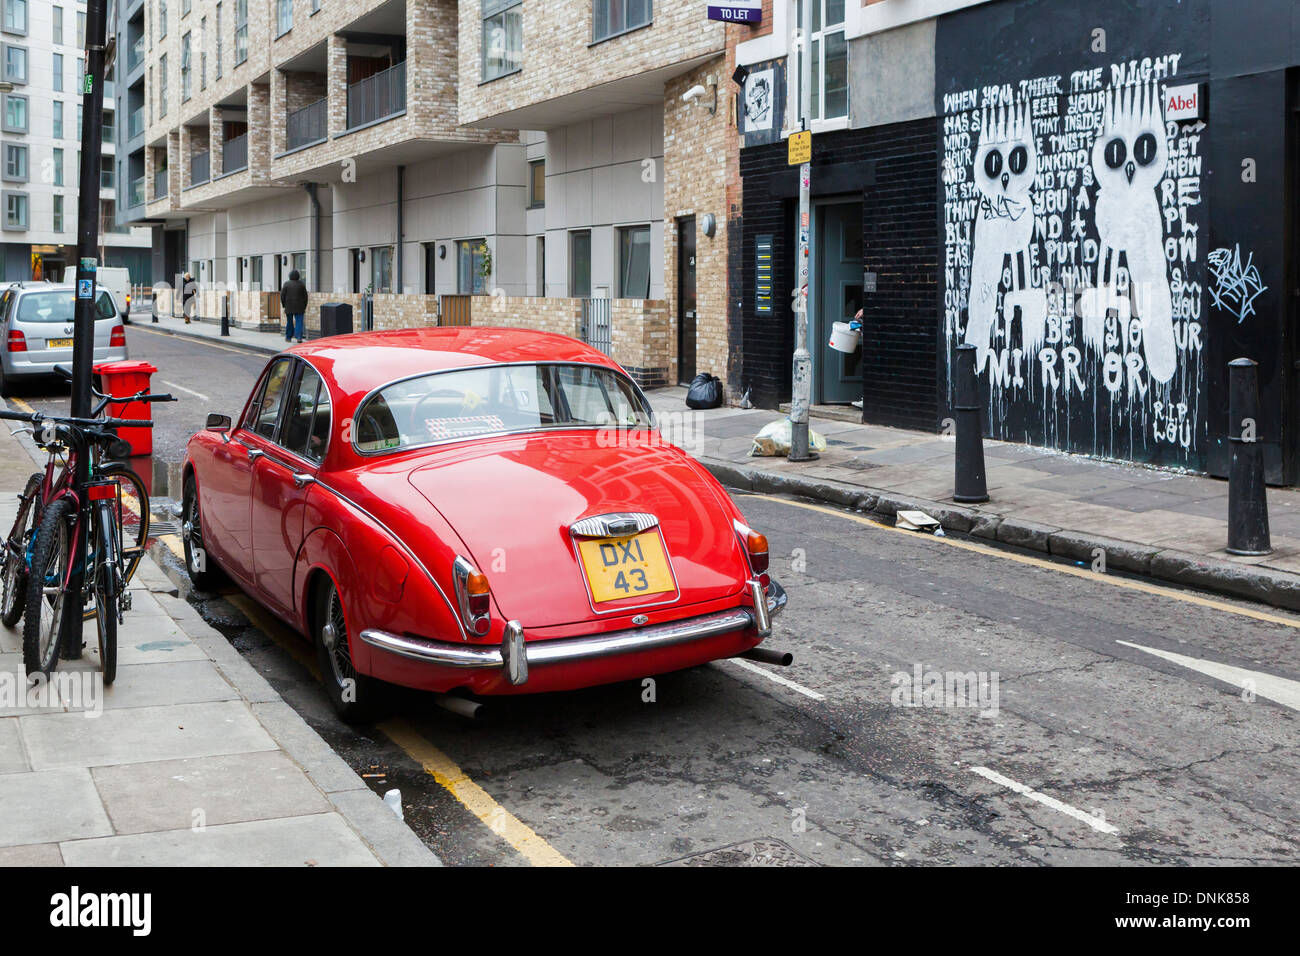 Red classic parked car and owls, street art by Dscreet - Bacon street, off Brick lane, East London, UK - Stock Image